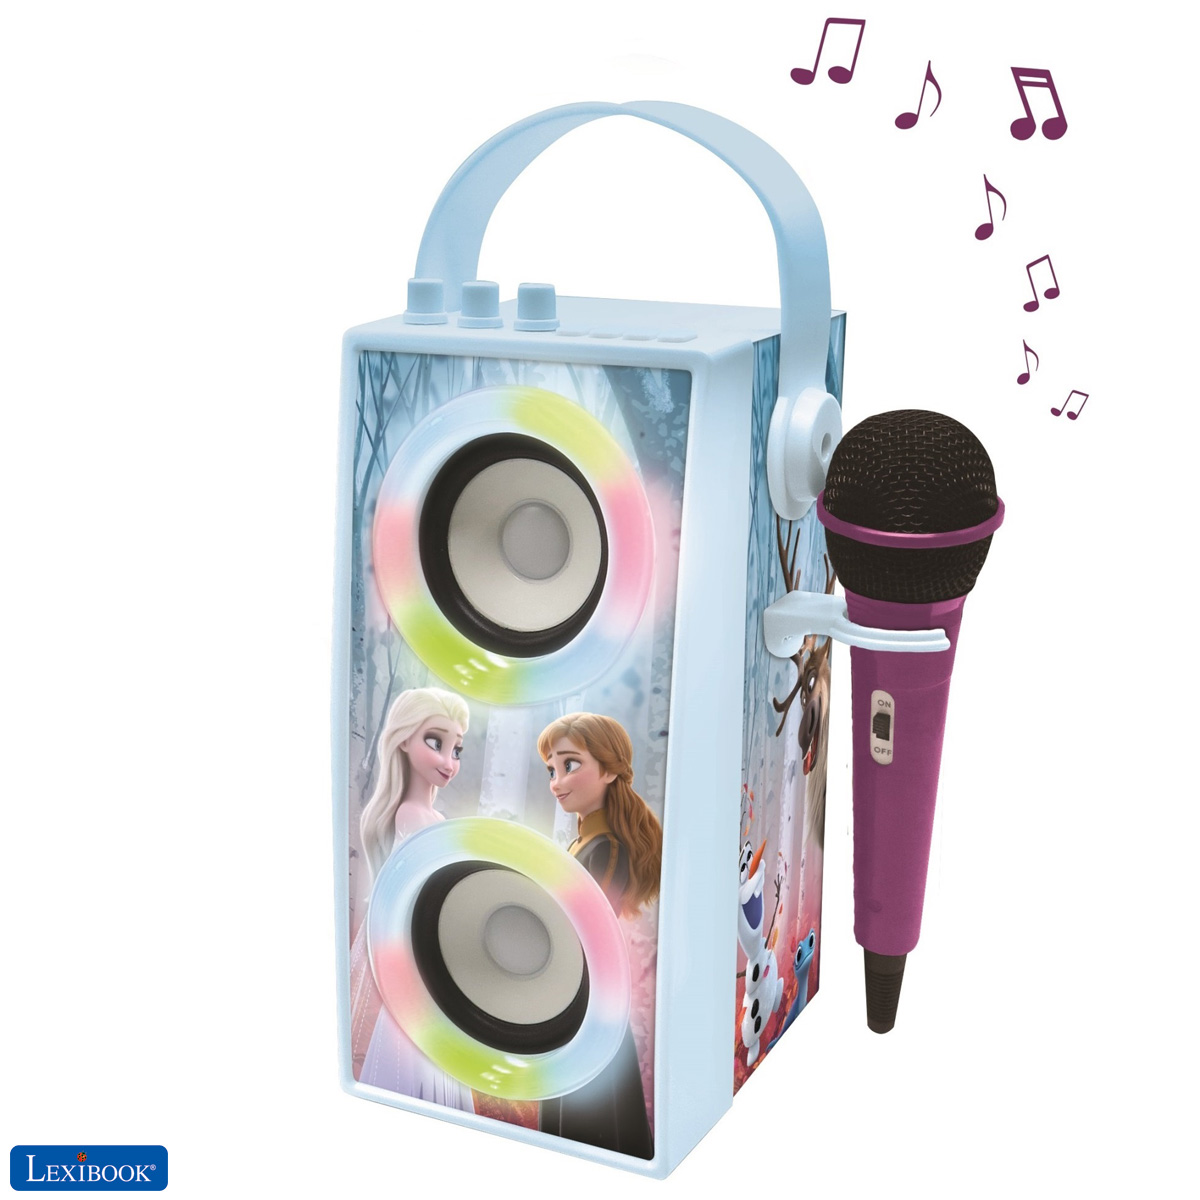 Lexibook - Frozen Trendy Portable Bluetooth Speaker with mic and amazing lights effects (BTP180FZZ)